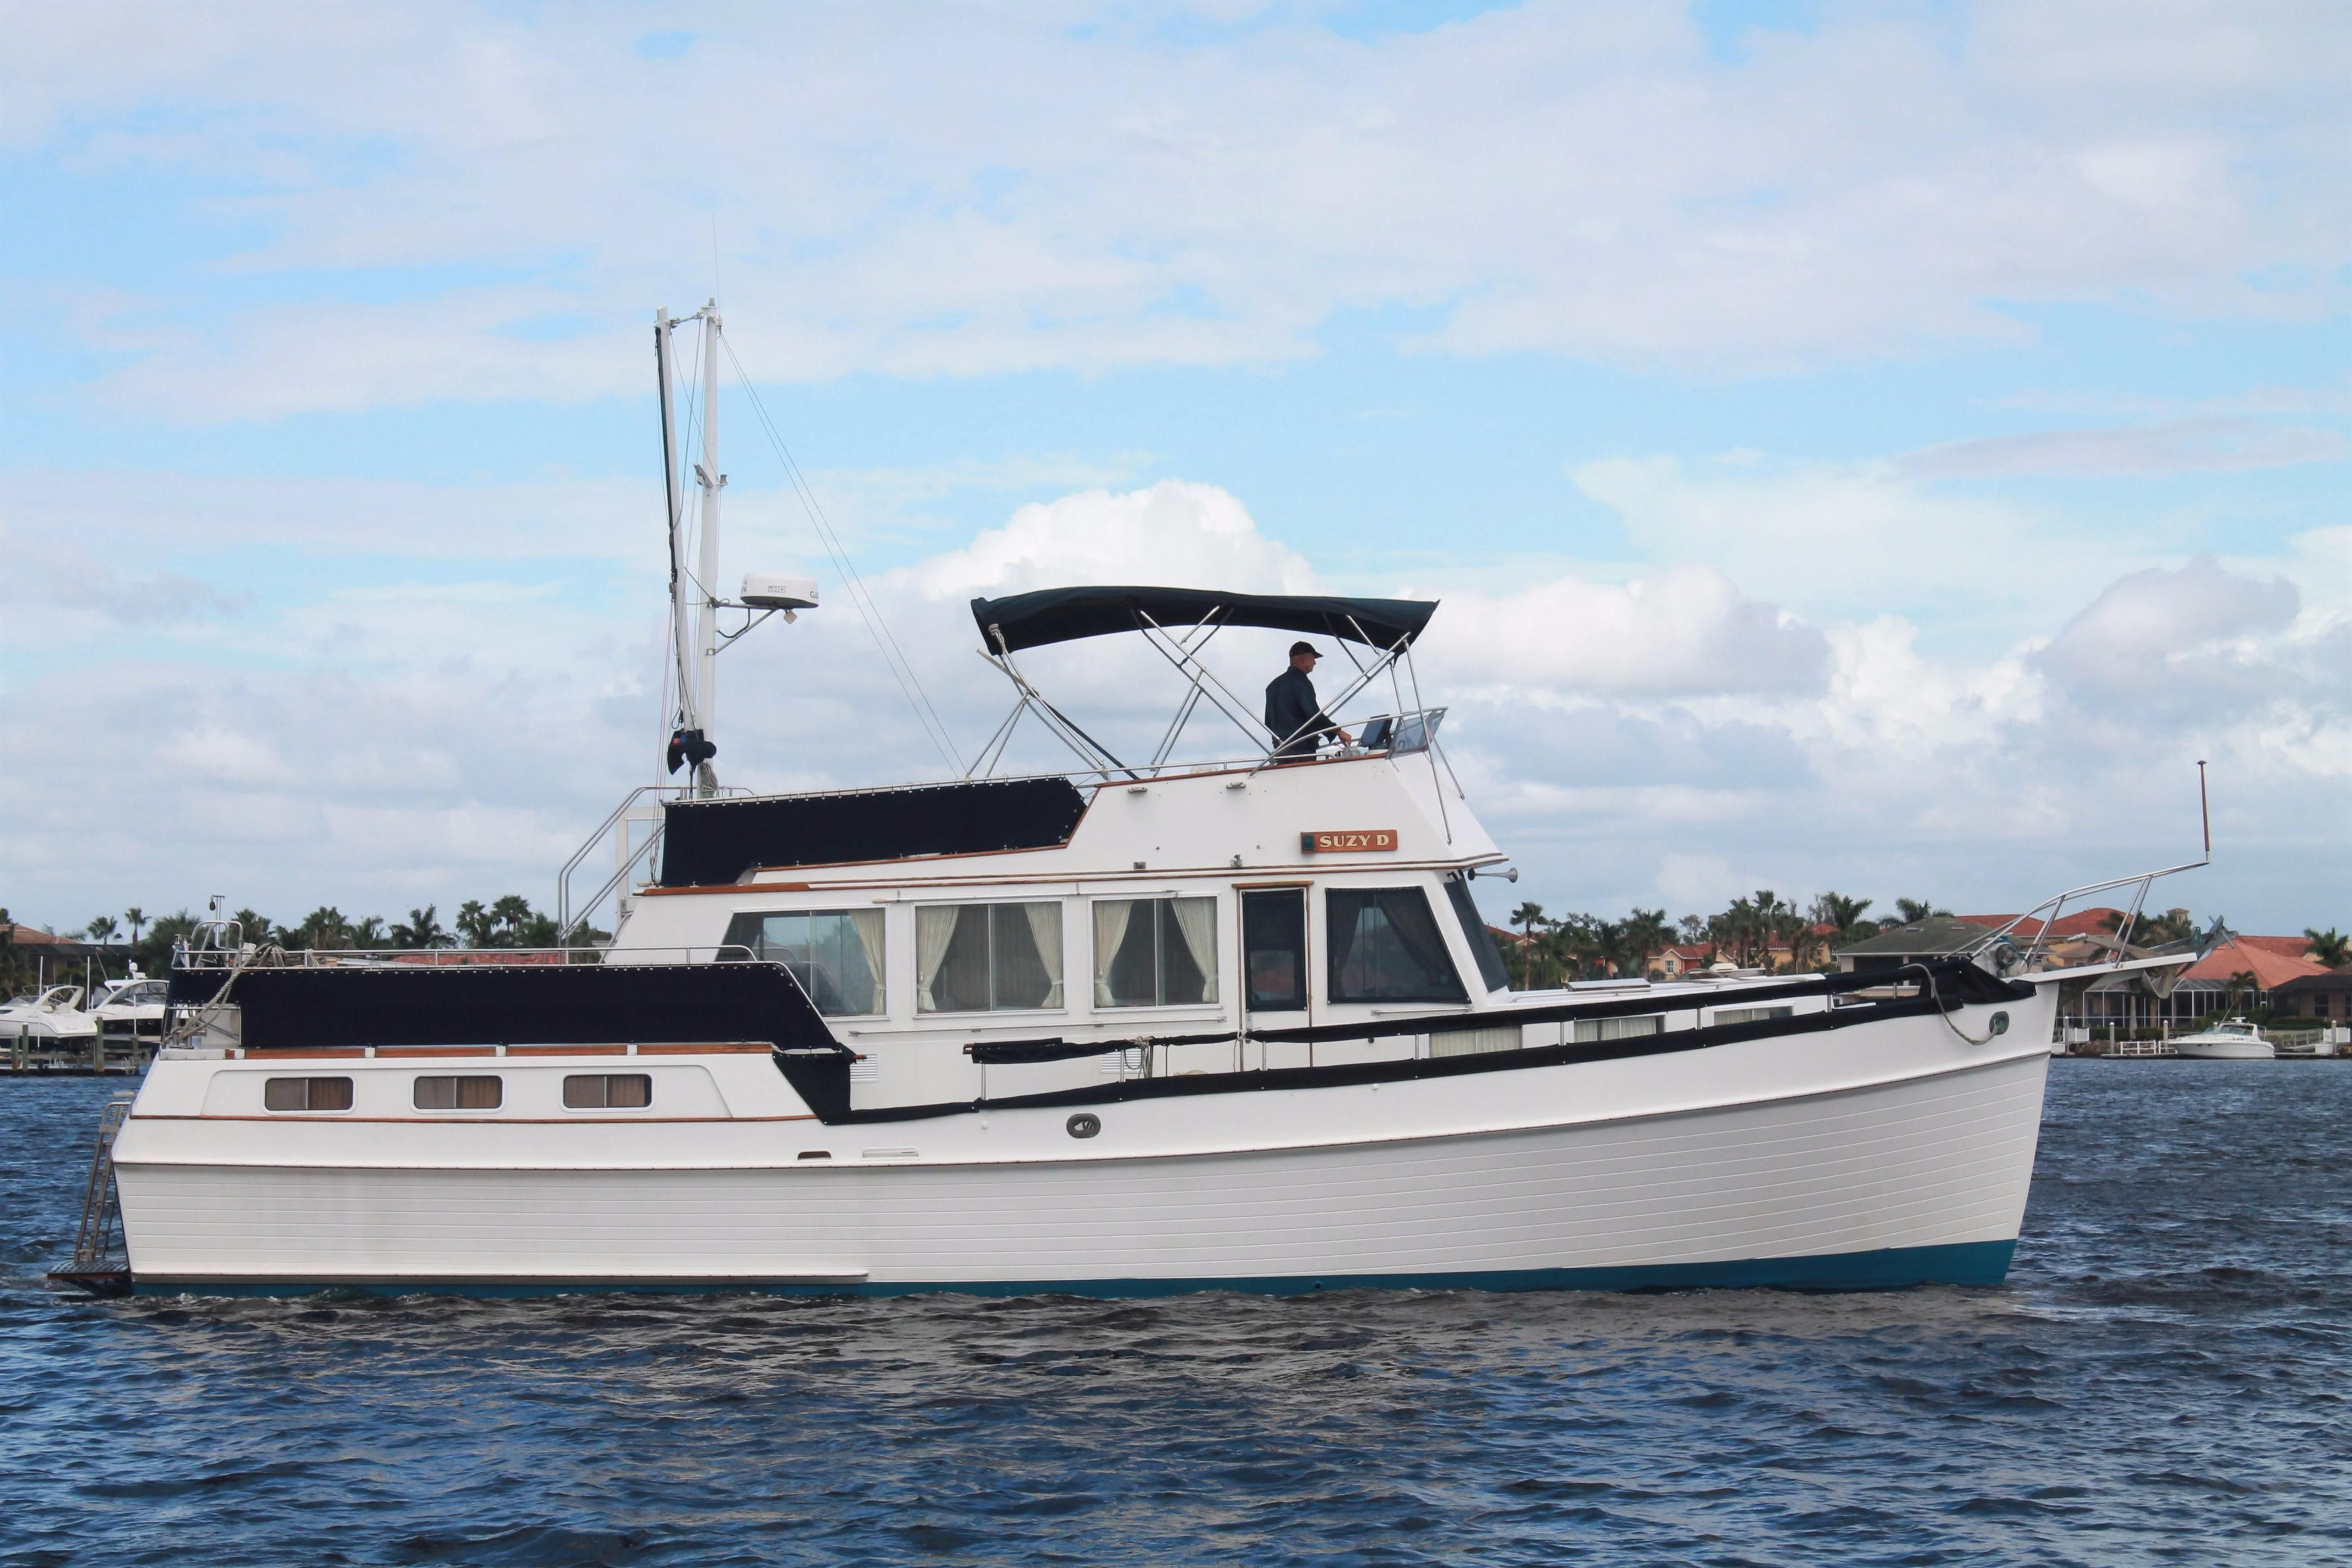 1987 grand banks 49 motor yacht power boat for sale www for Grand banks motor yachts for sale